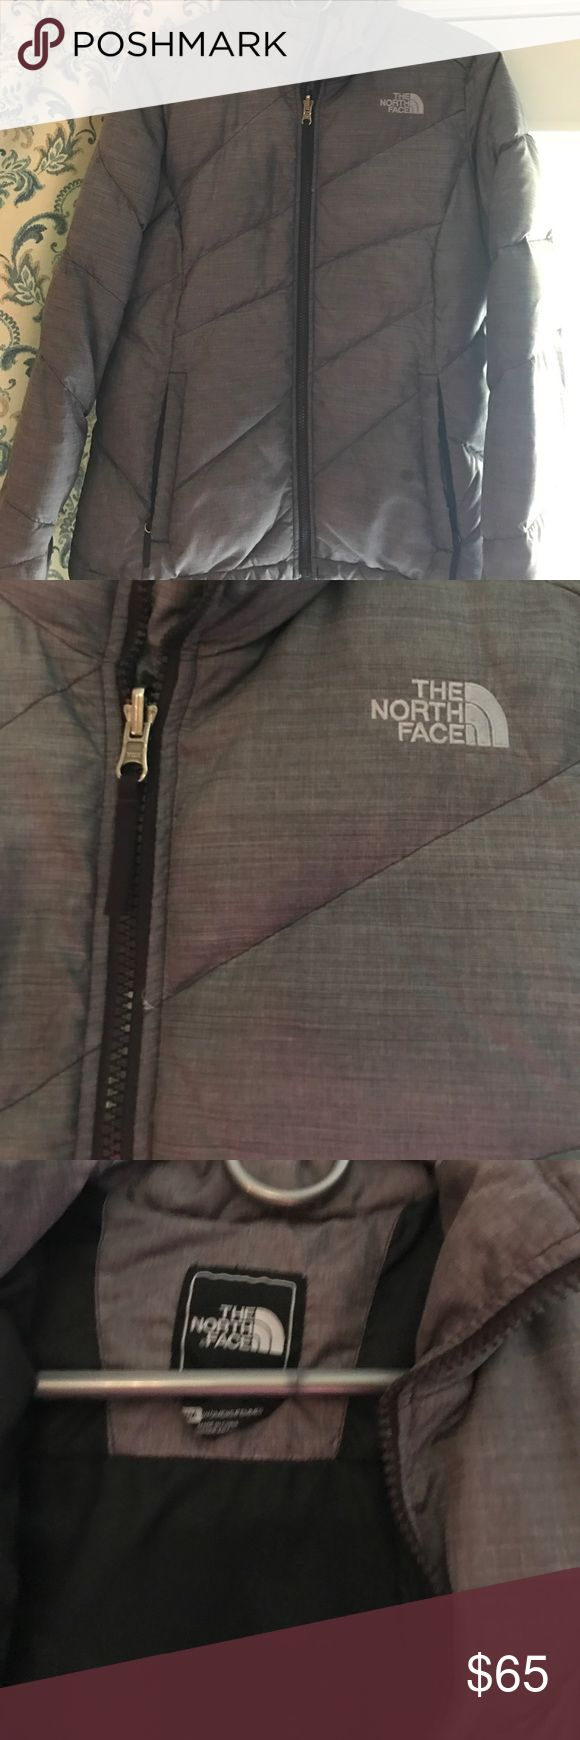 North face women's puffer Grey puffer jacket, two pockets, vipper close North Face Jackets & Coats Puffers